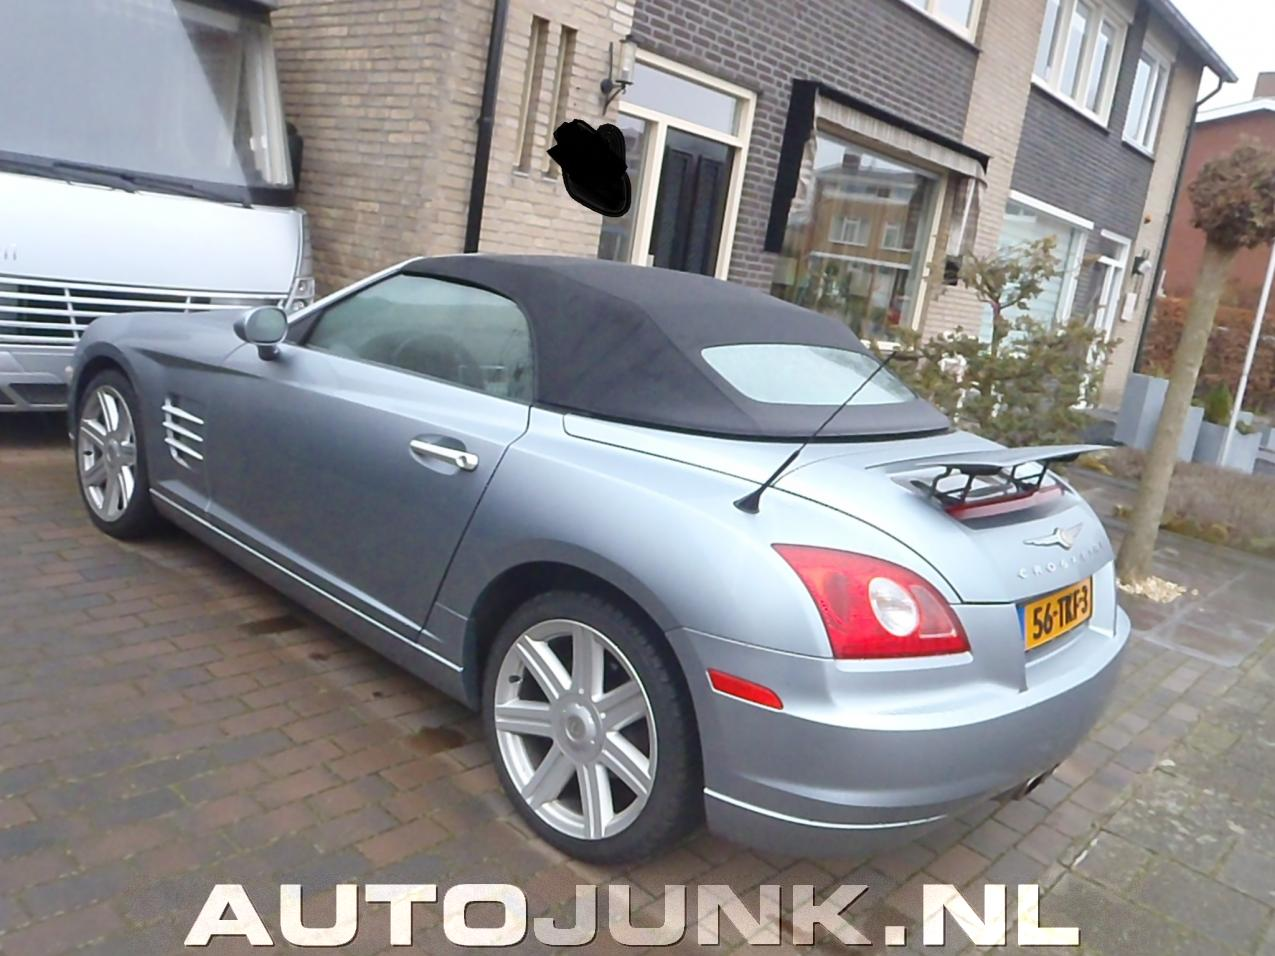 2004 chrysler crossfire cabrio grijs foto 39 s. Black Bedroom Furniture Sets. Home Design Ideas